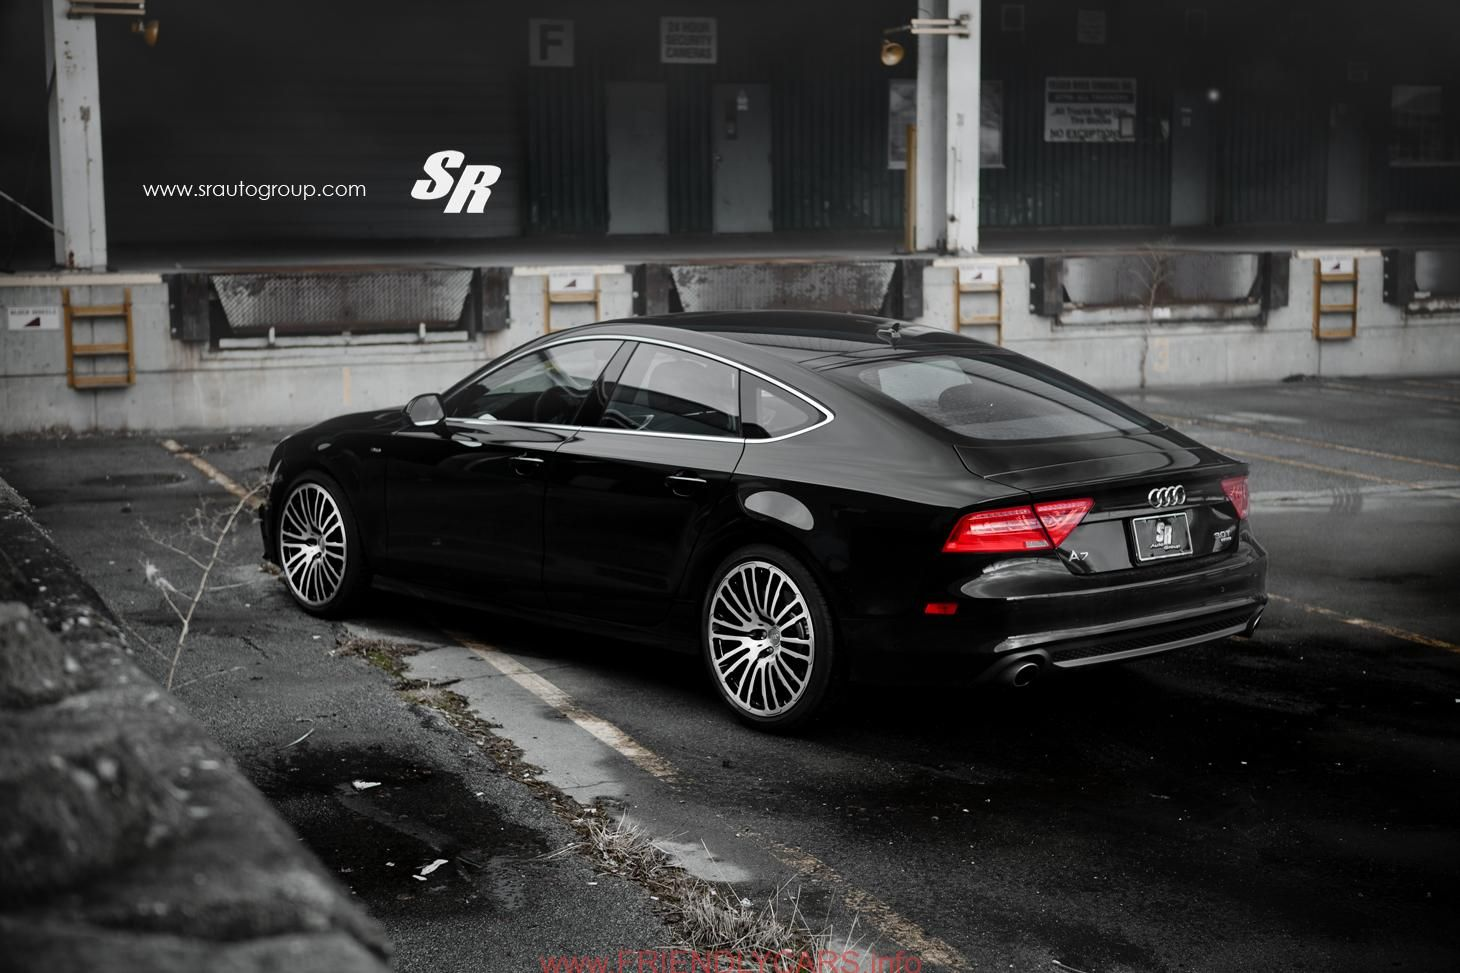 cool audi a7 black edition car images hd Volkswagen Golf I ...